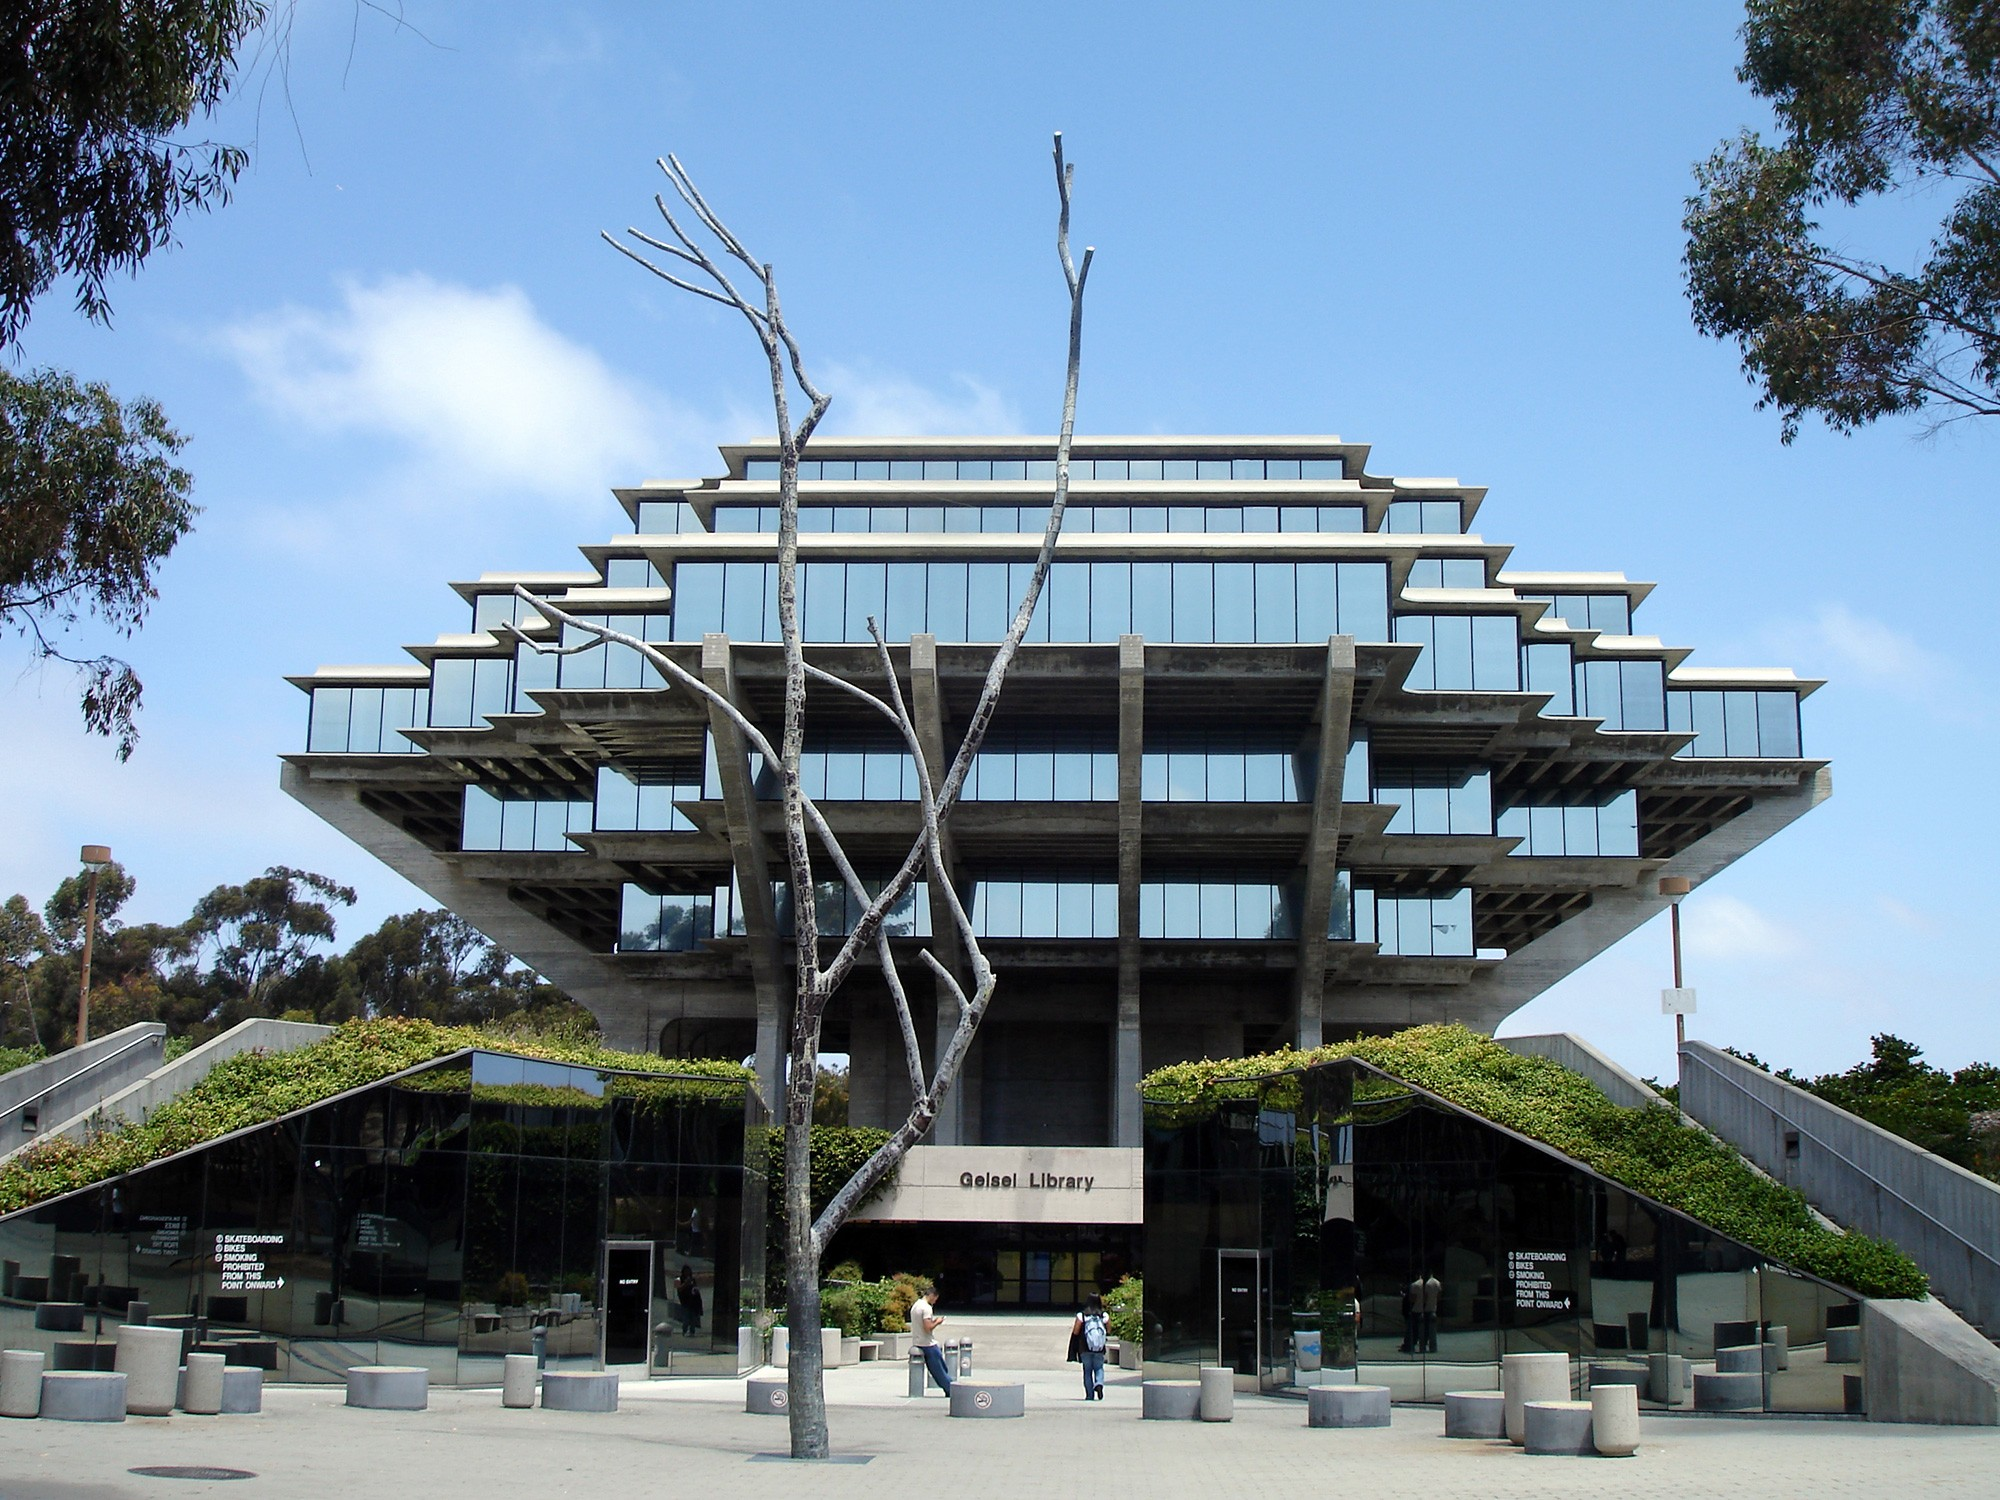 Charmant Geisel Library, UCSD. Photo Via Flickr.